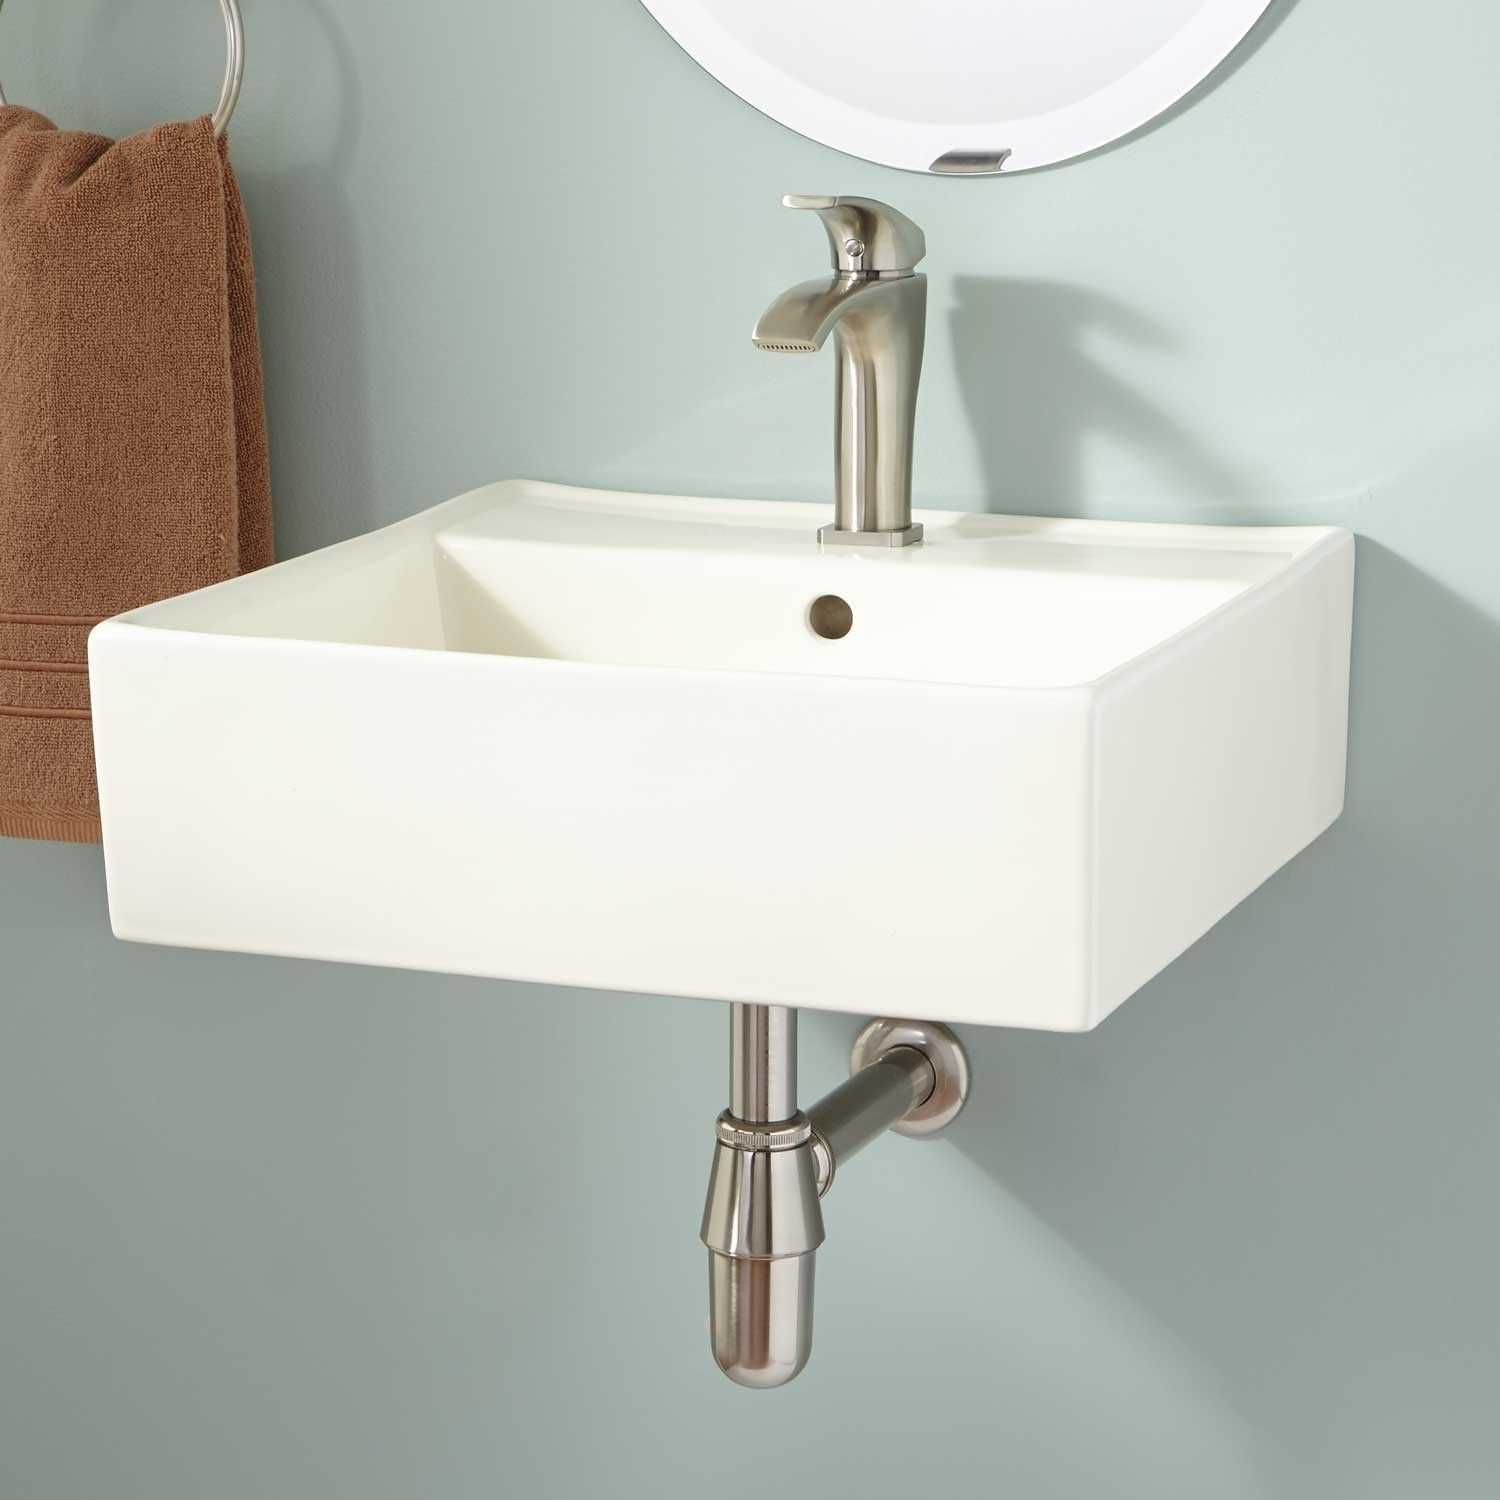 Audrie Wall Mount Bathroom Sink Wall Mounted Bathroom Sinks Small Bathroom Sinks Farmhouse Bathroom Sink